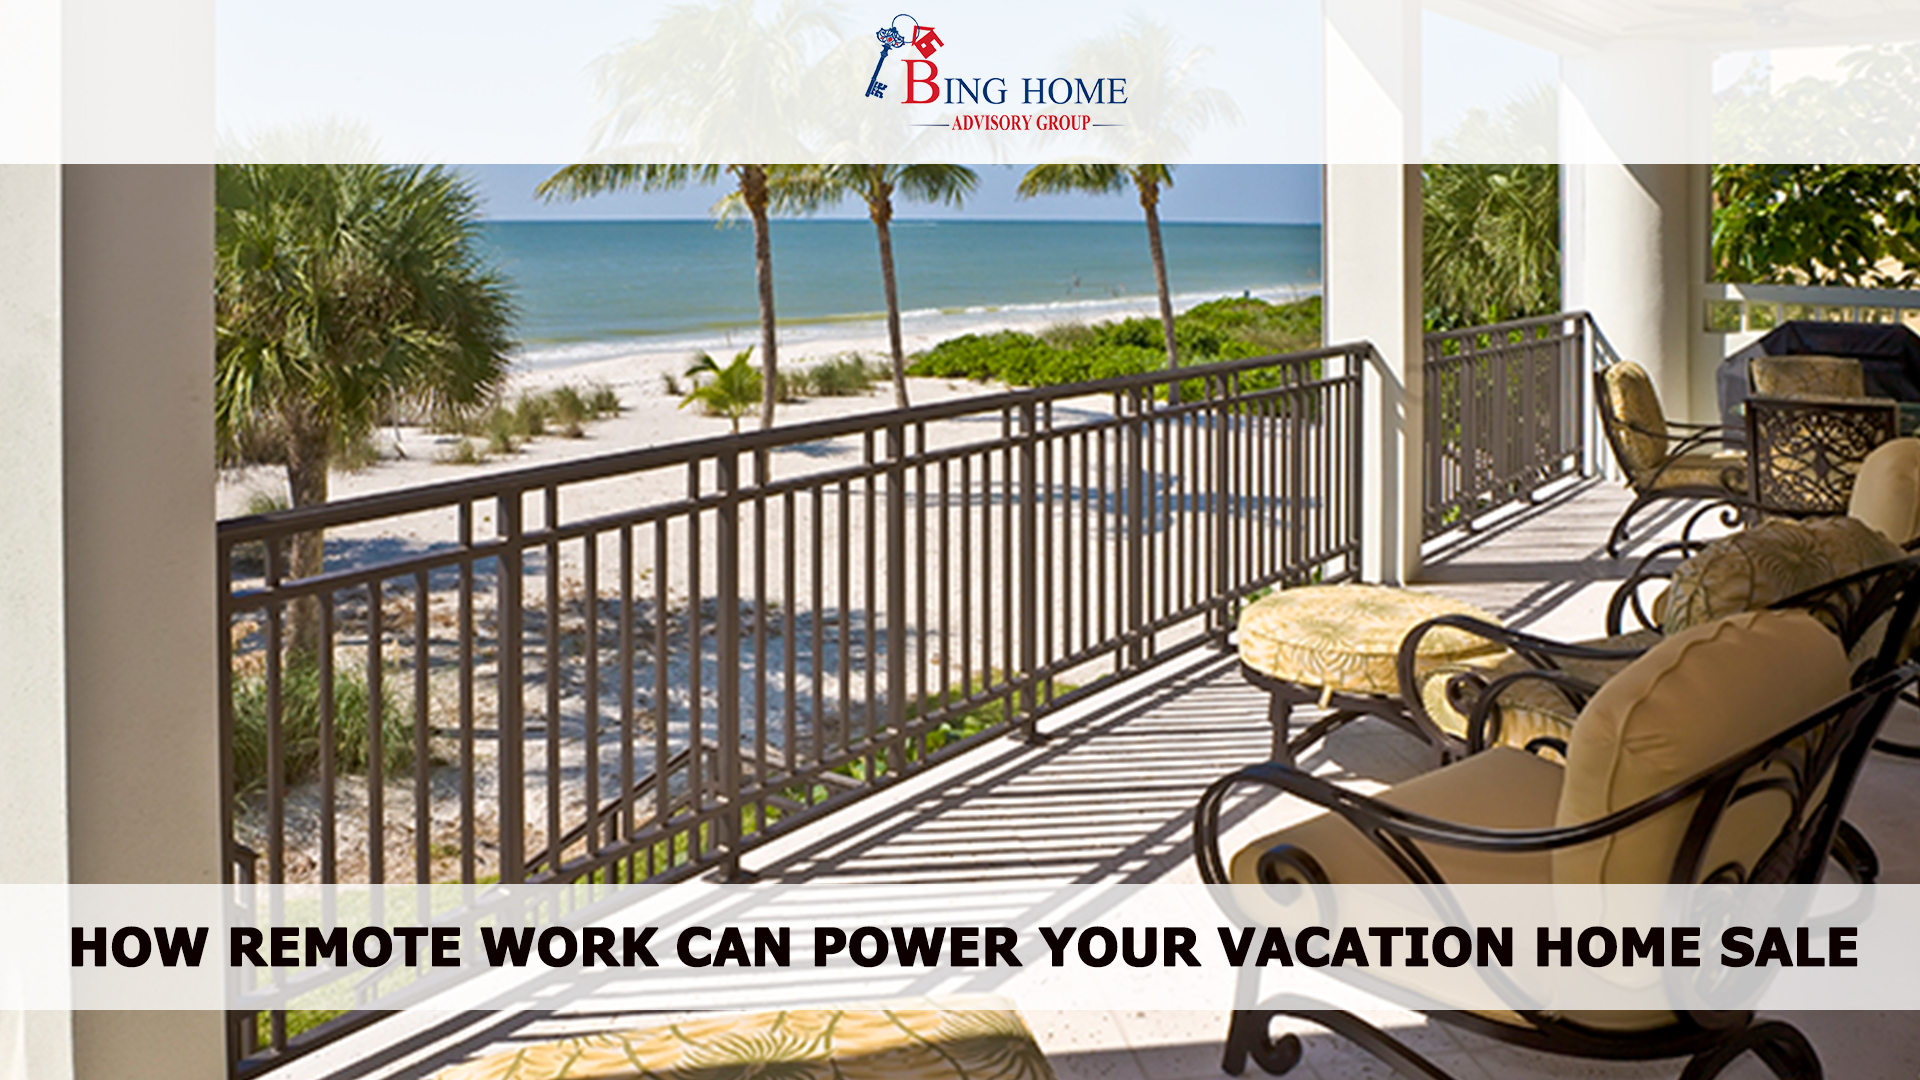 How Remote Work Can Power Your Vacation Home Sale 16x9.jpg